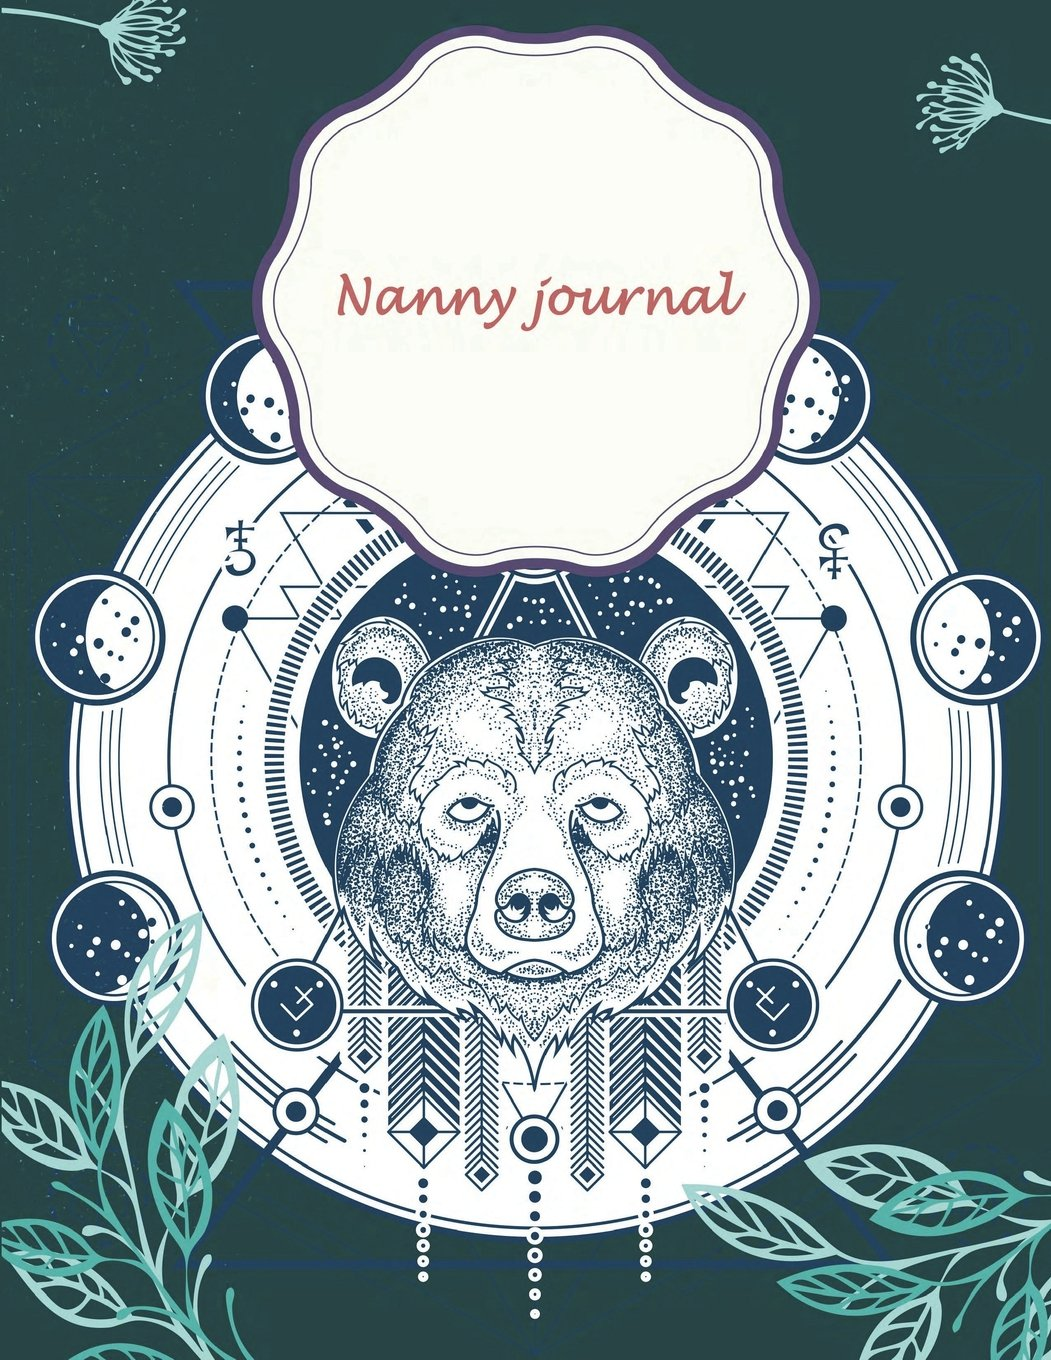 """Nanny journal: Cute Green Bear, Breastfeeding Journal, Baby Newborn Diapers, Childcare Nanny Report Book, Kids Record, Kids Healthy Activities 120 pages 8.5"""" x 11"""" ePub fb2 book"""